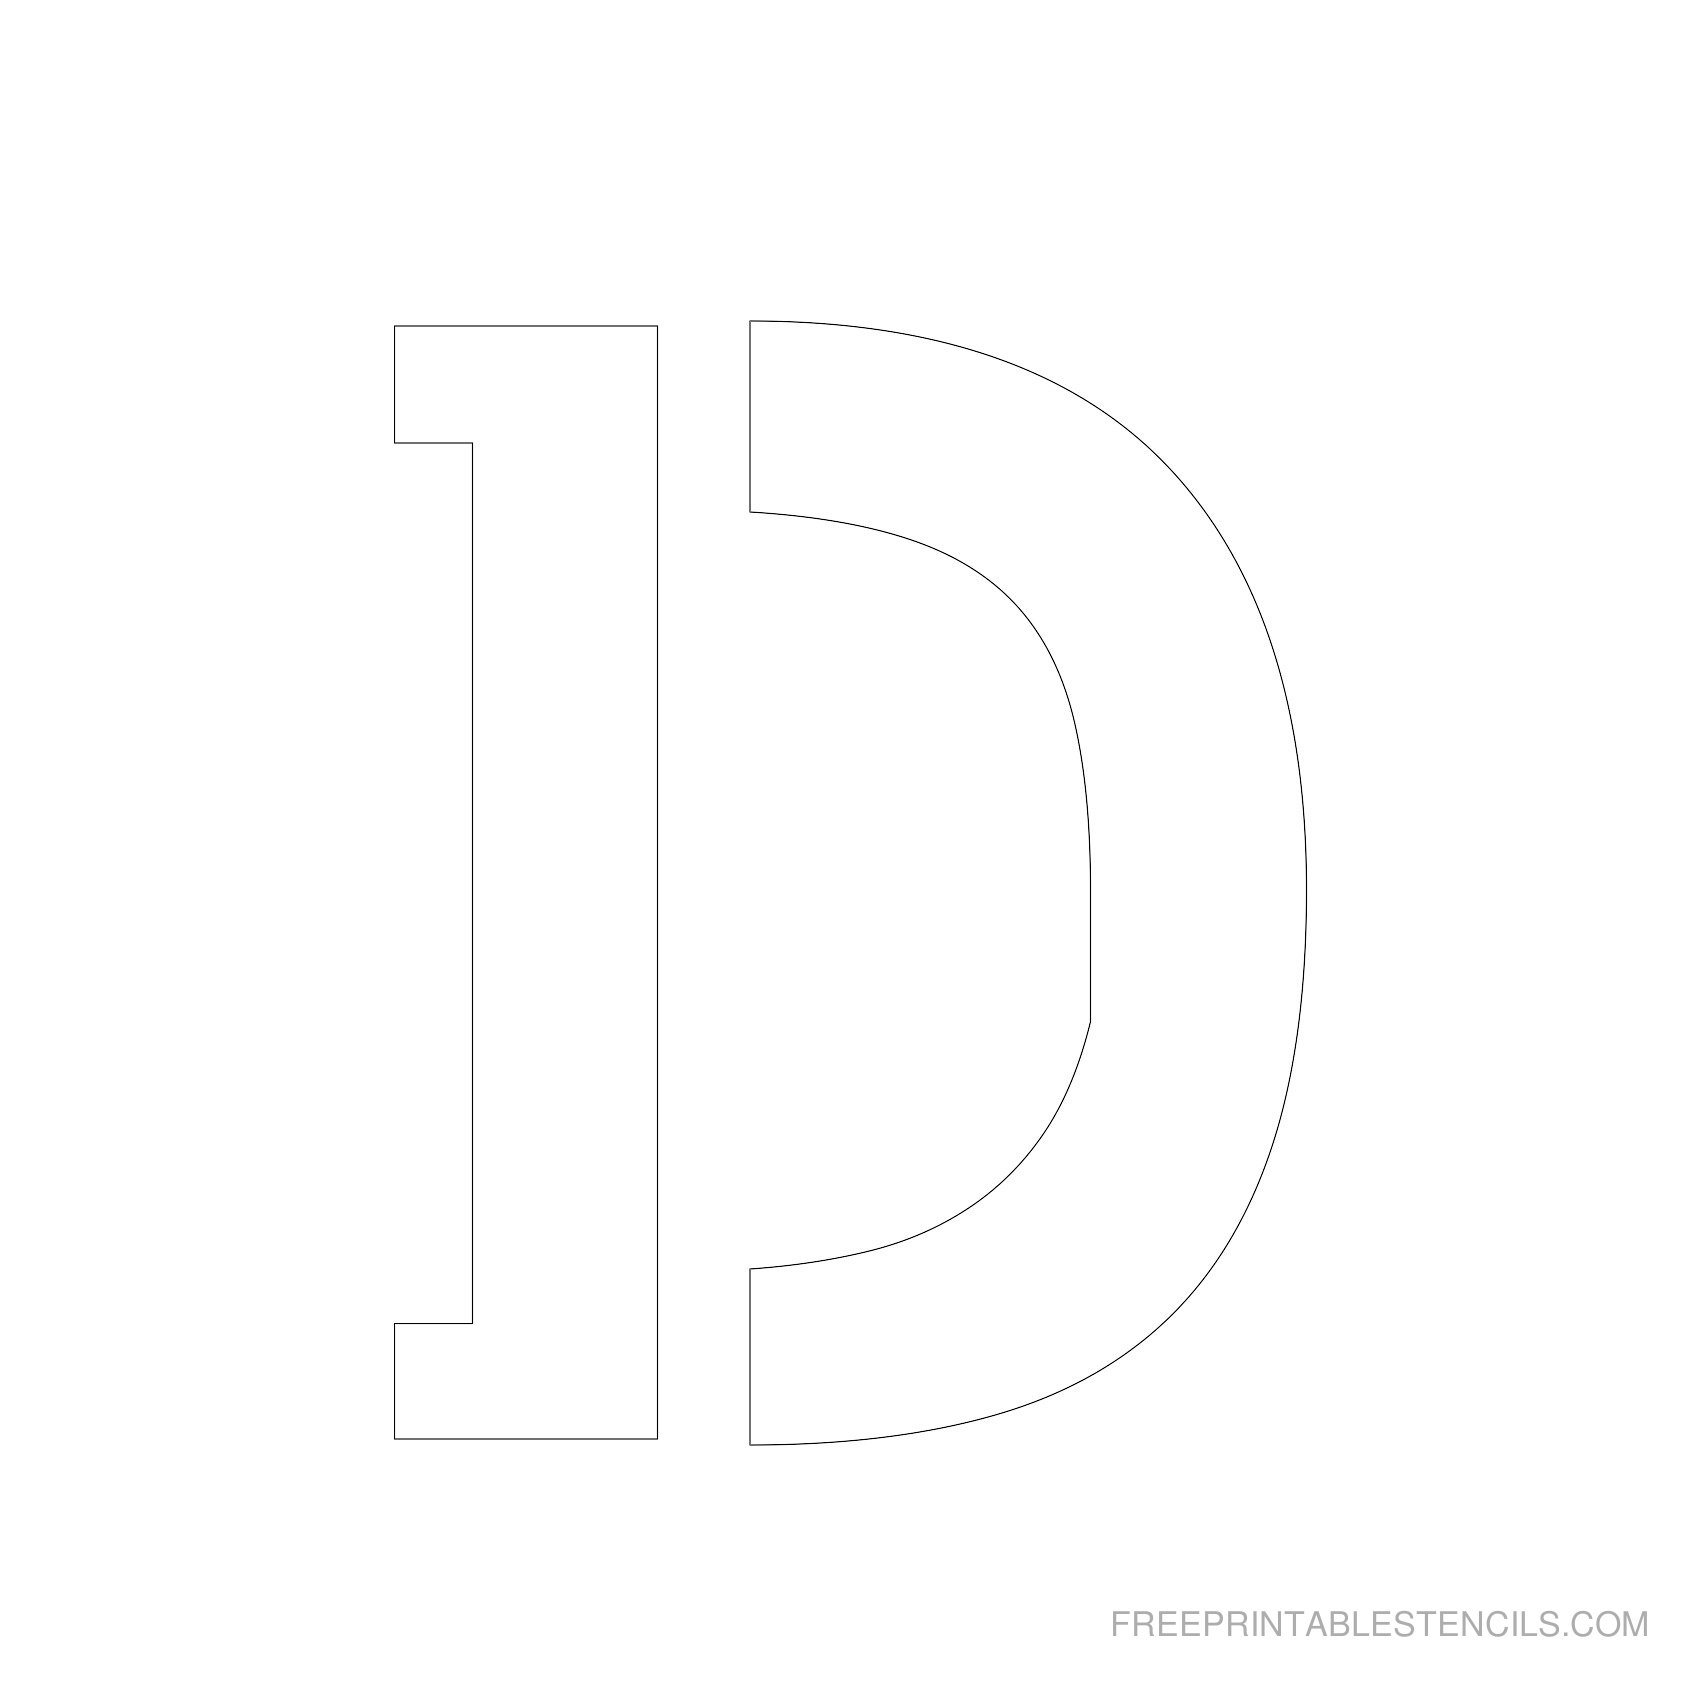 Letter Stencils To Print | Free Printable Stencils - Free Printable Letter Templates